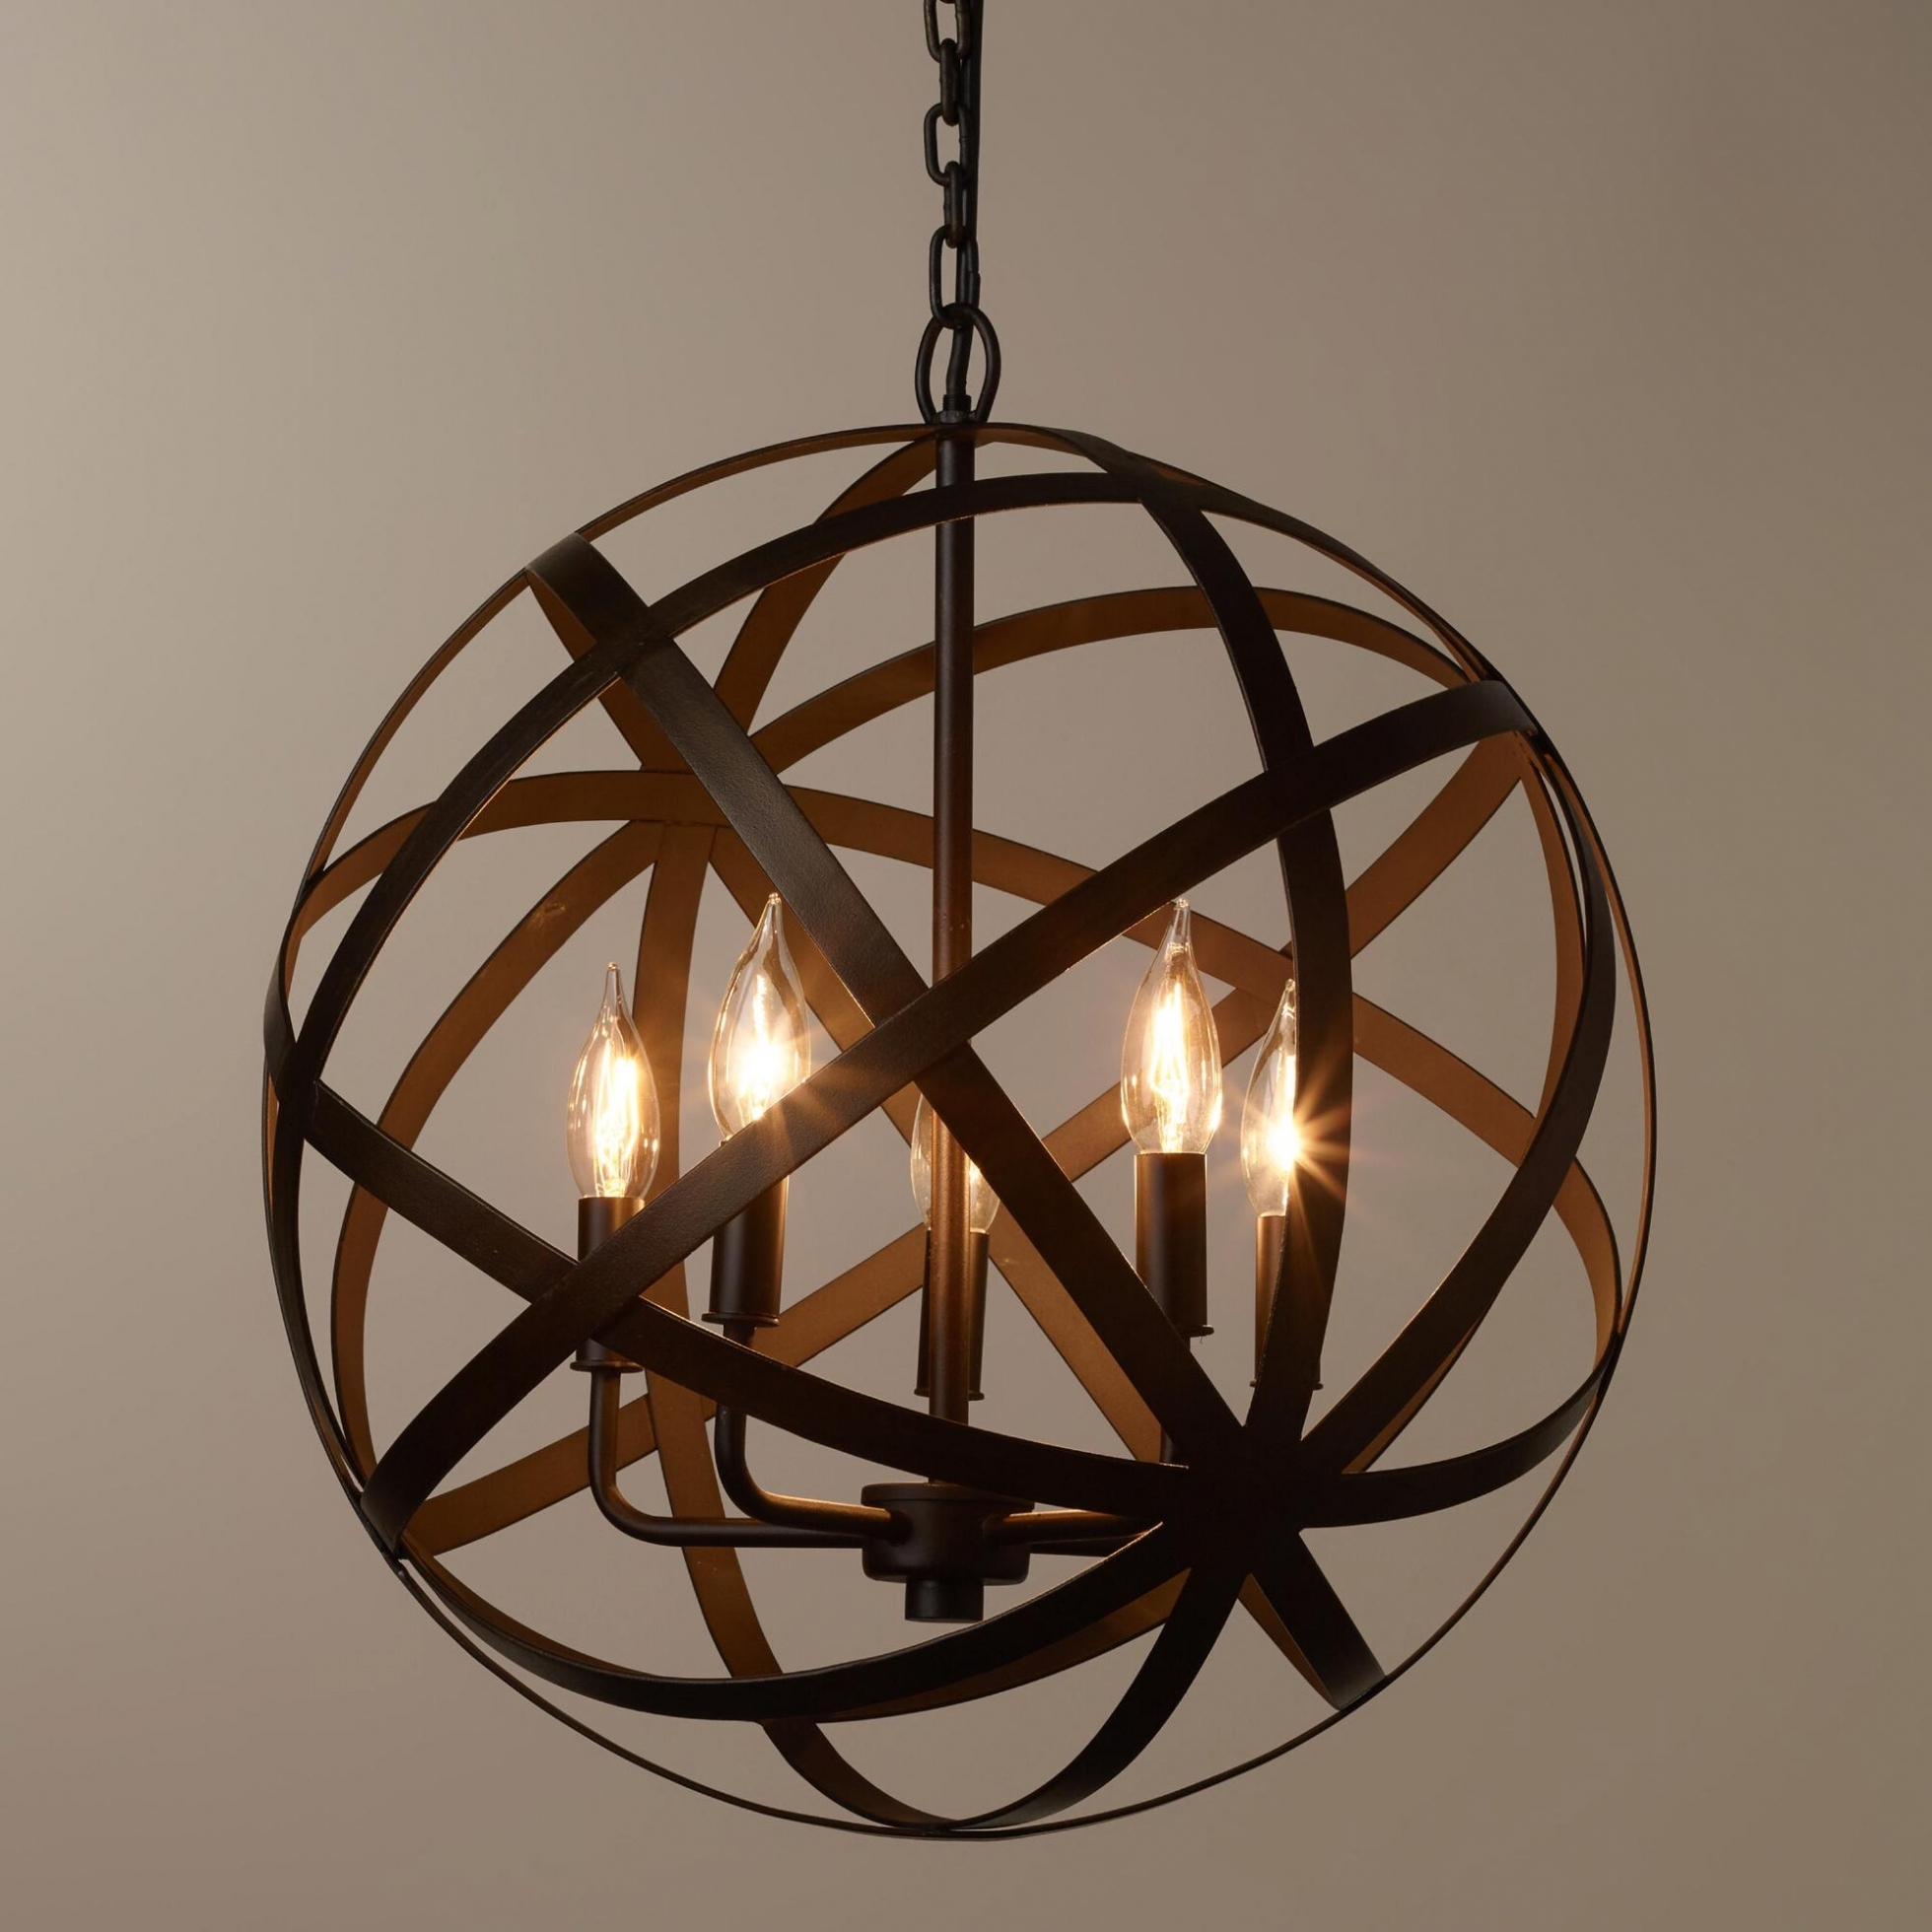 Recent Home Decor: Pendant Lights (View 15 of 15)